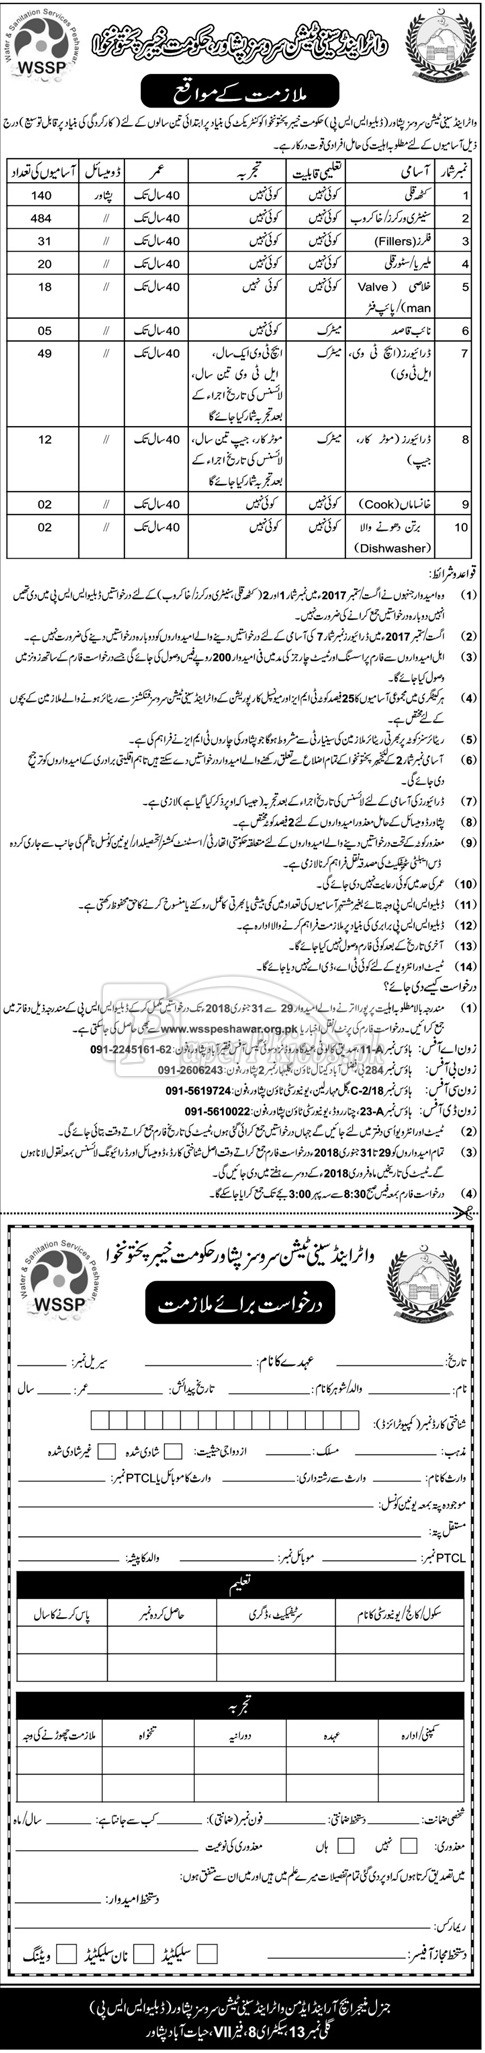 Water & Sanitation Services Peshawar WSSP KPK Jobs 2018